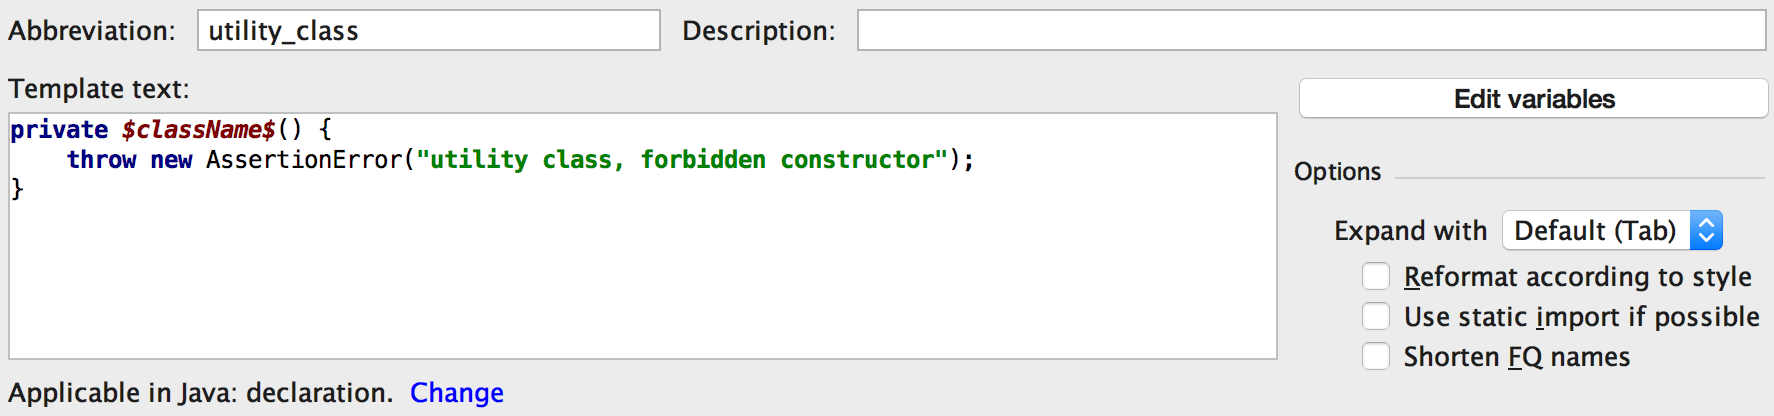 Live templates in IntelliJ are awesome